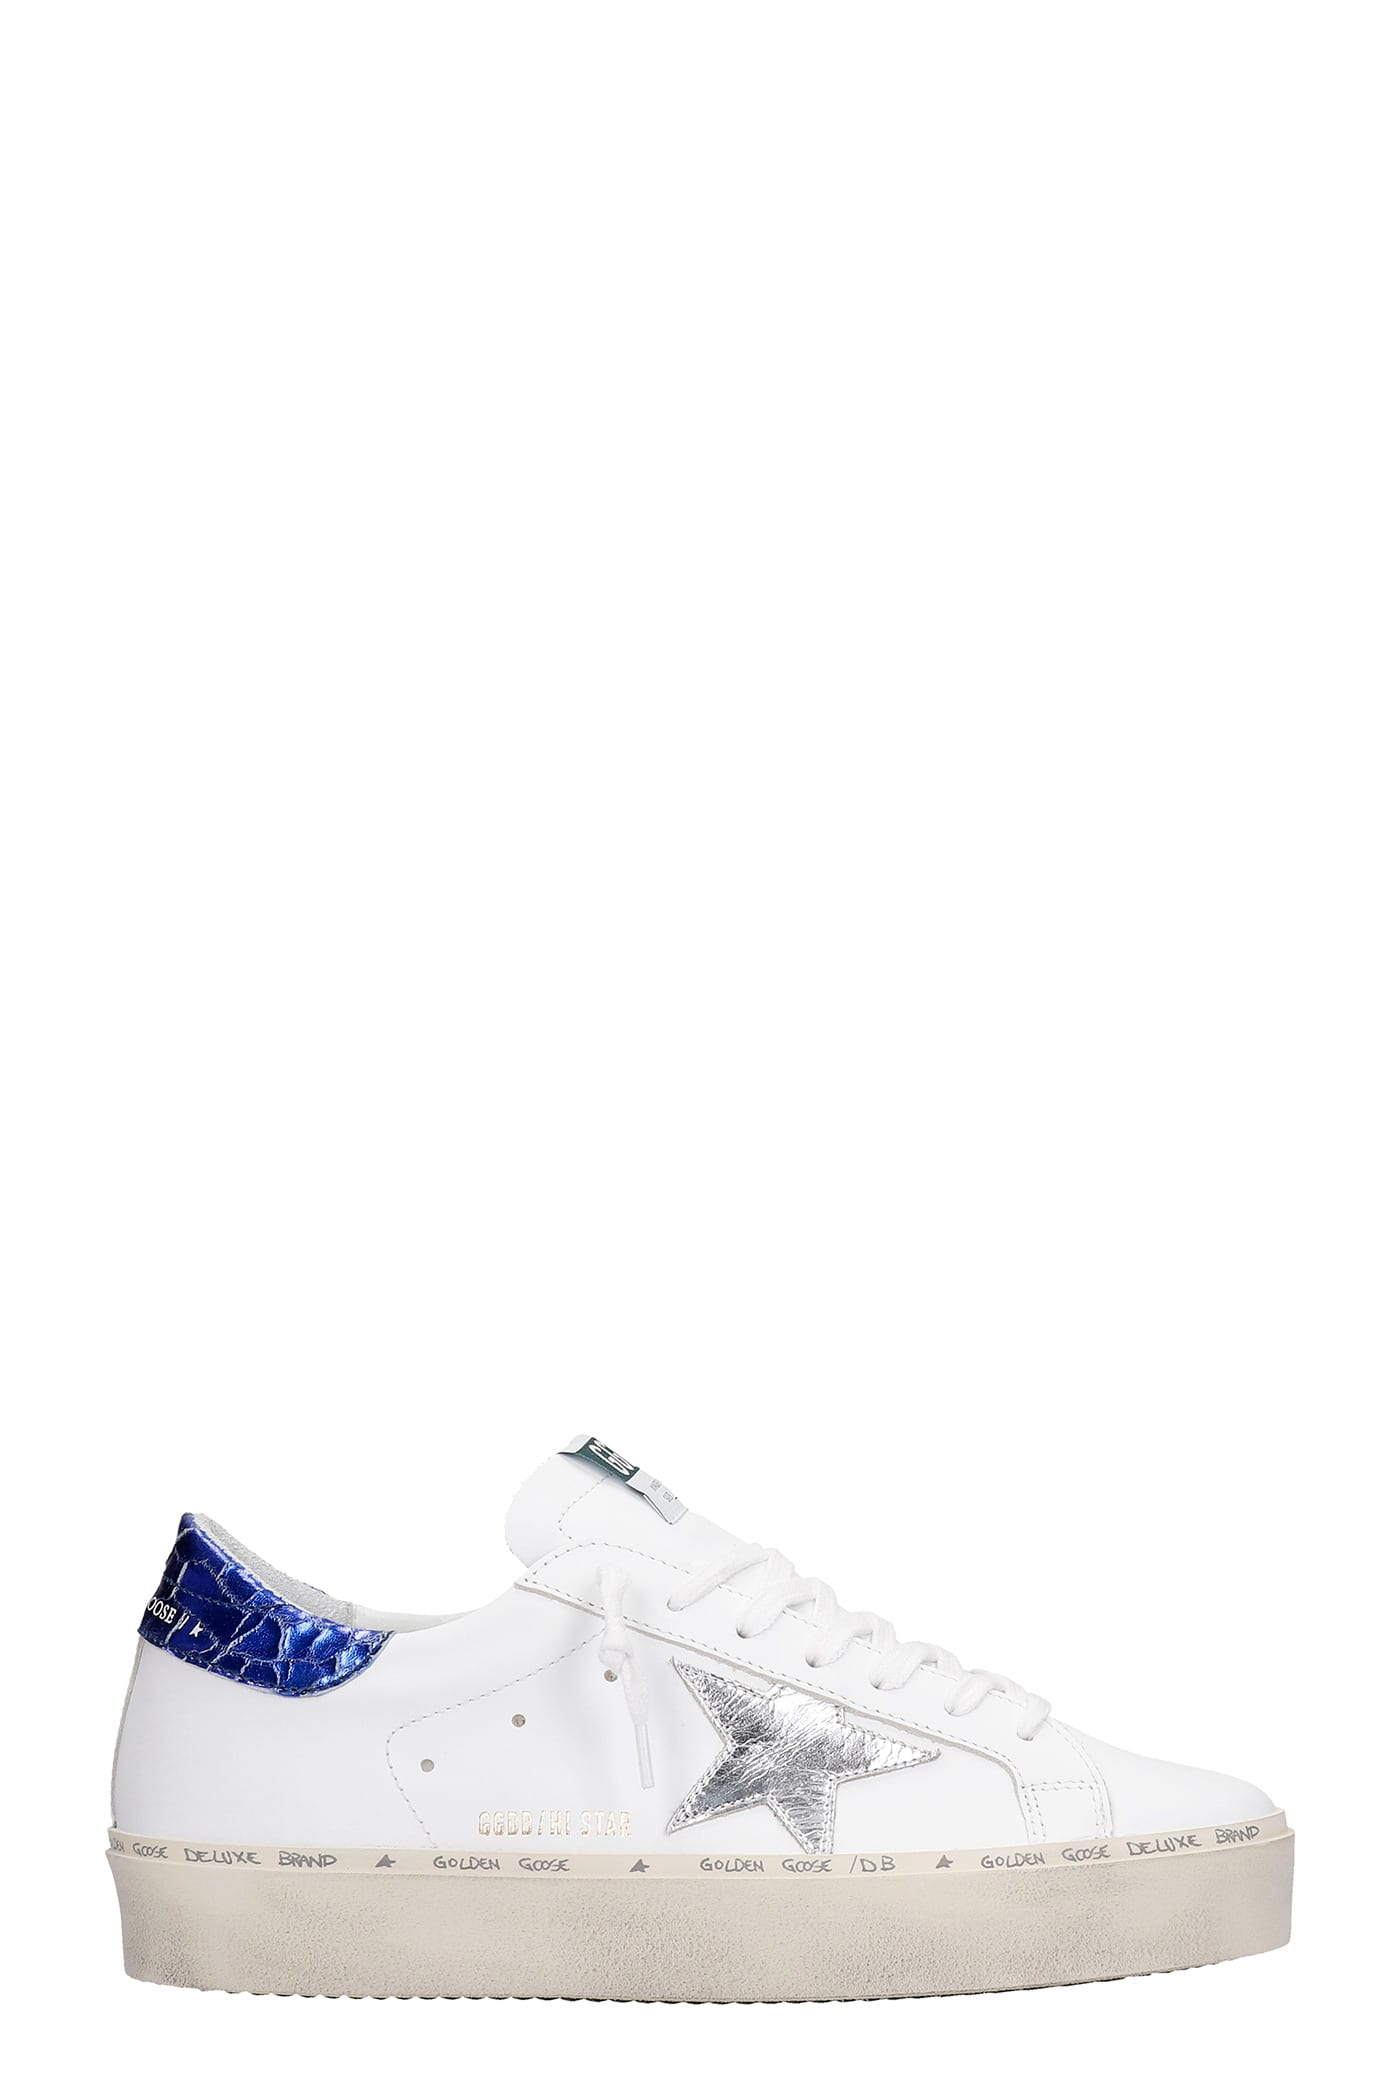 Golden Goose Leathers HI STAR SNEAKERS IN WHITE LEATHER